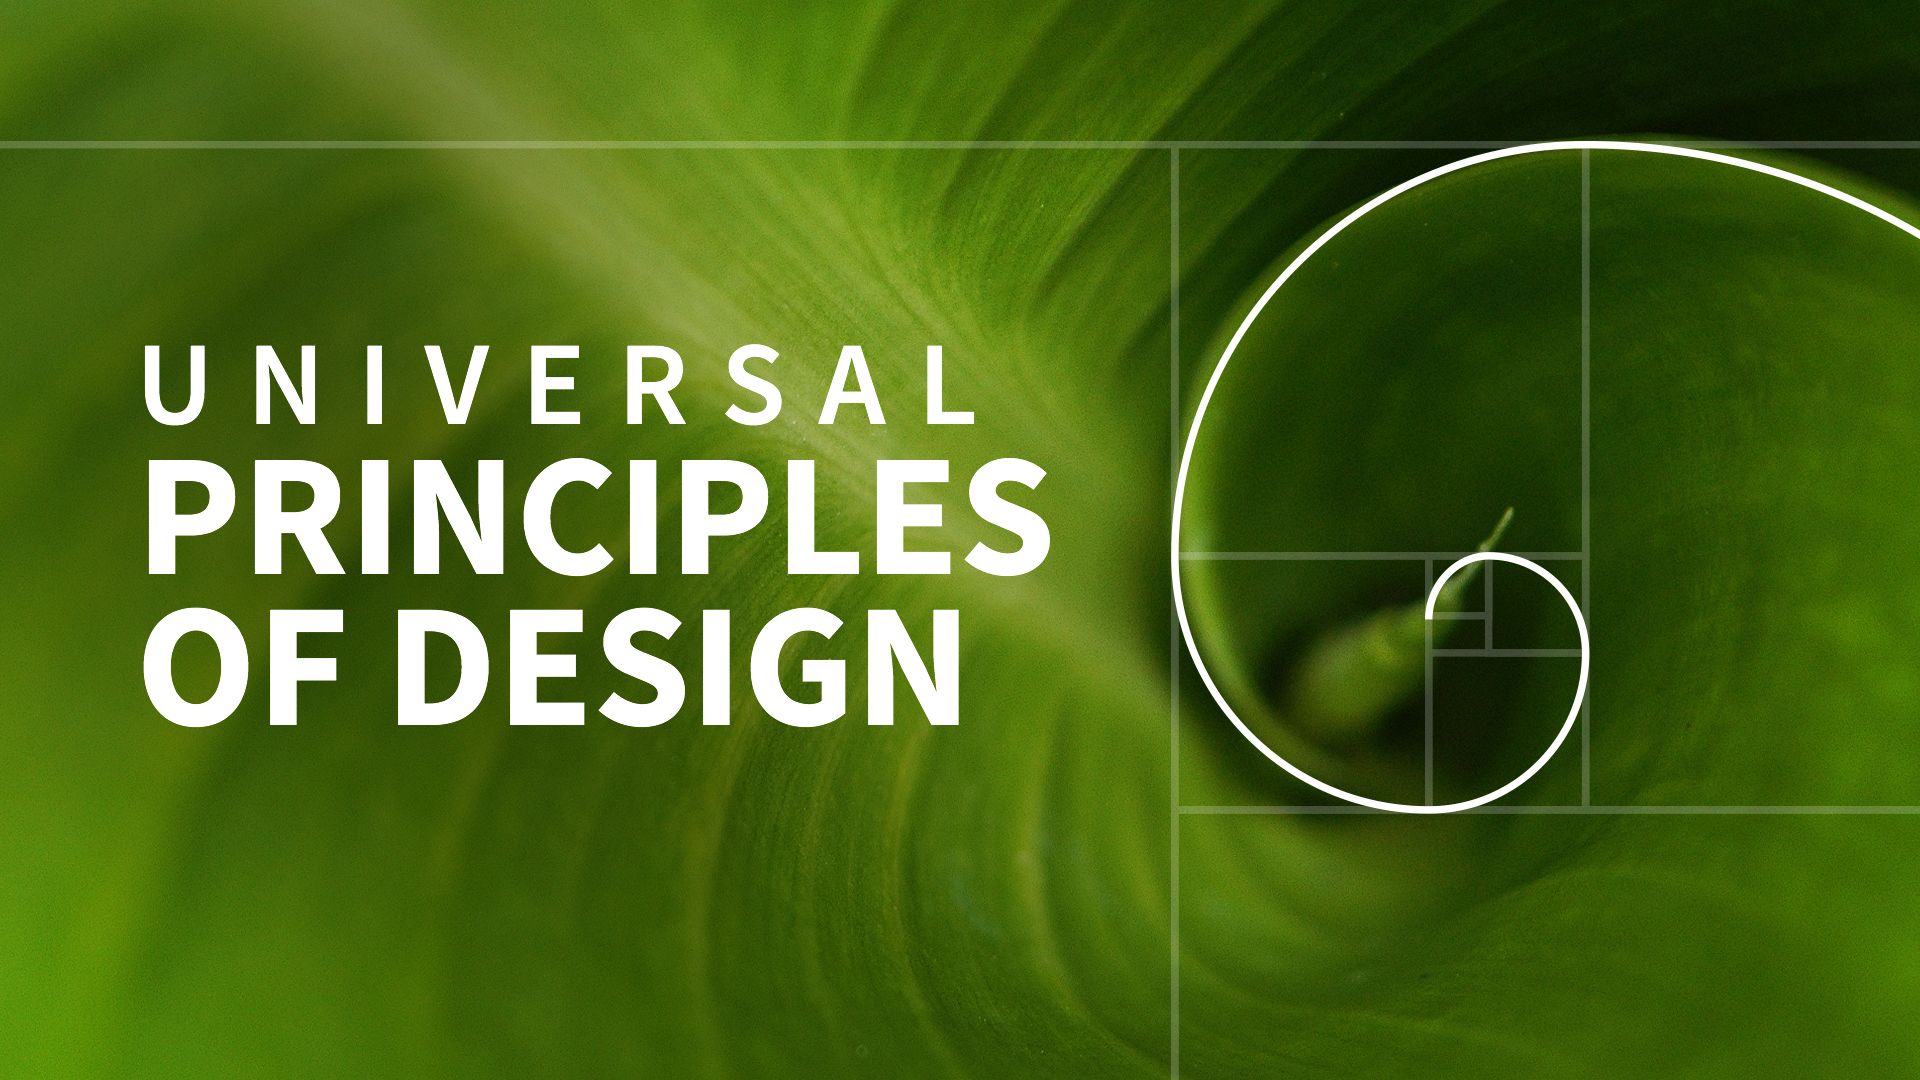 Aesthetic-usability effect: Universal Principles of Design